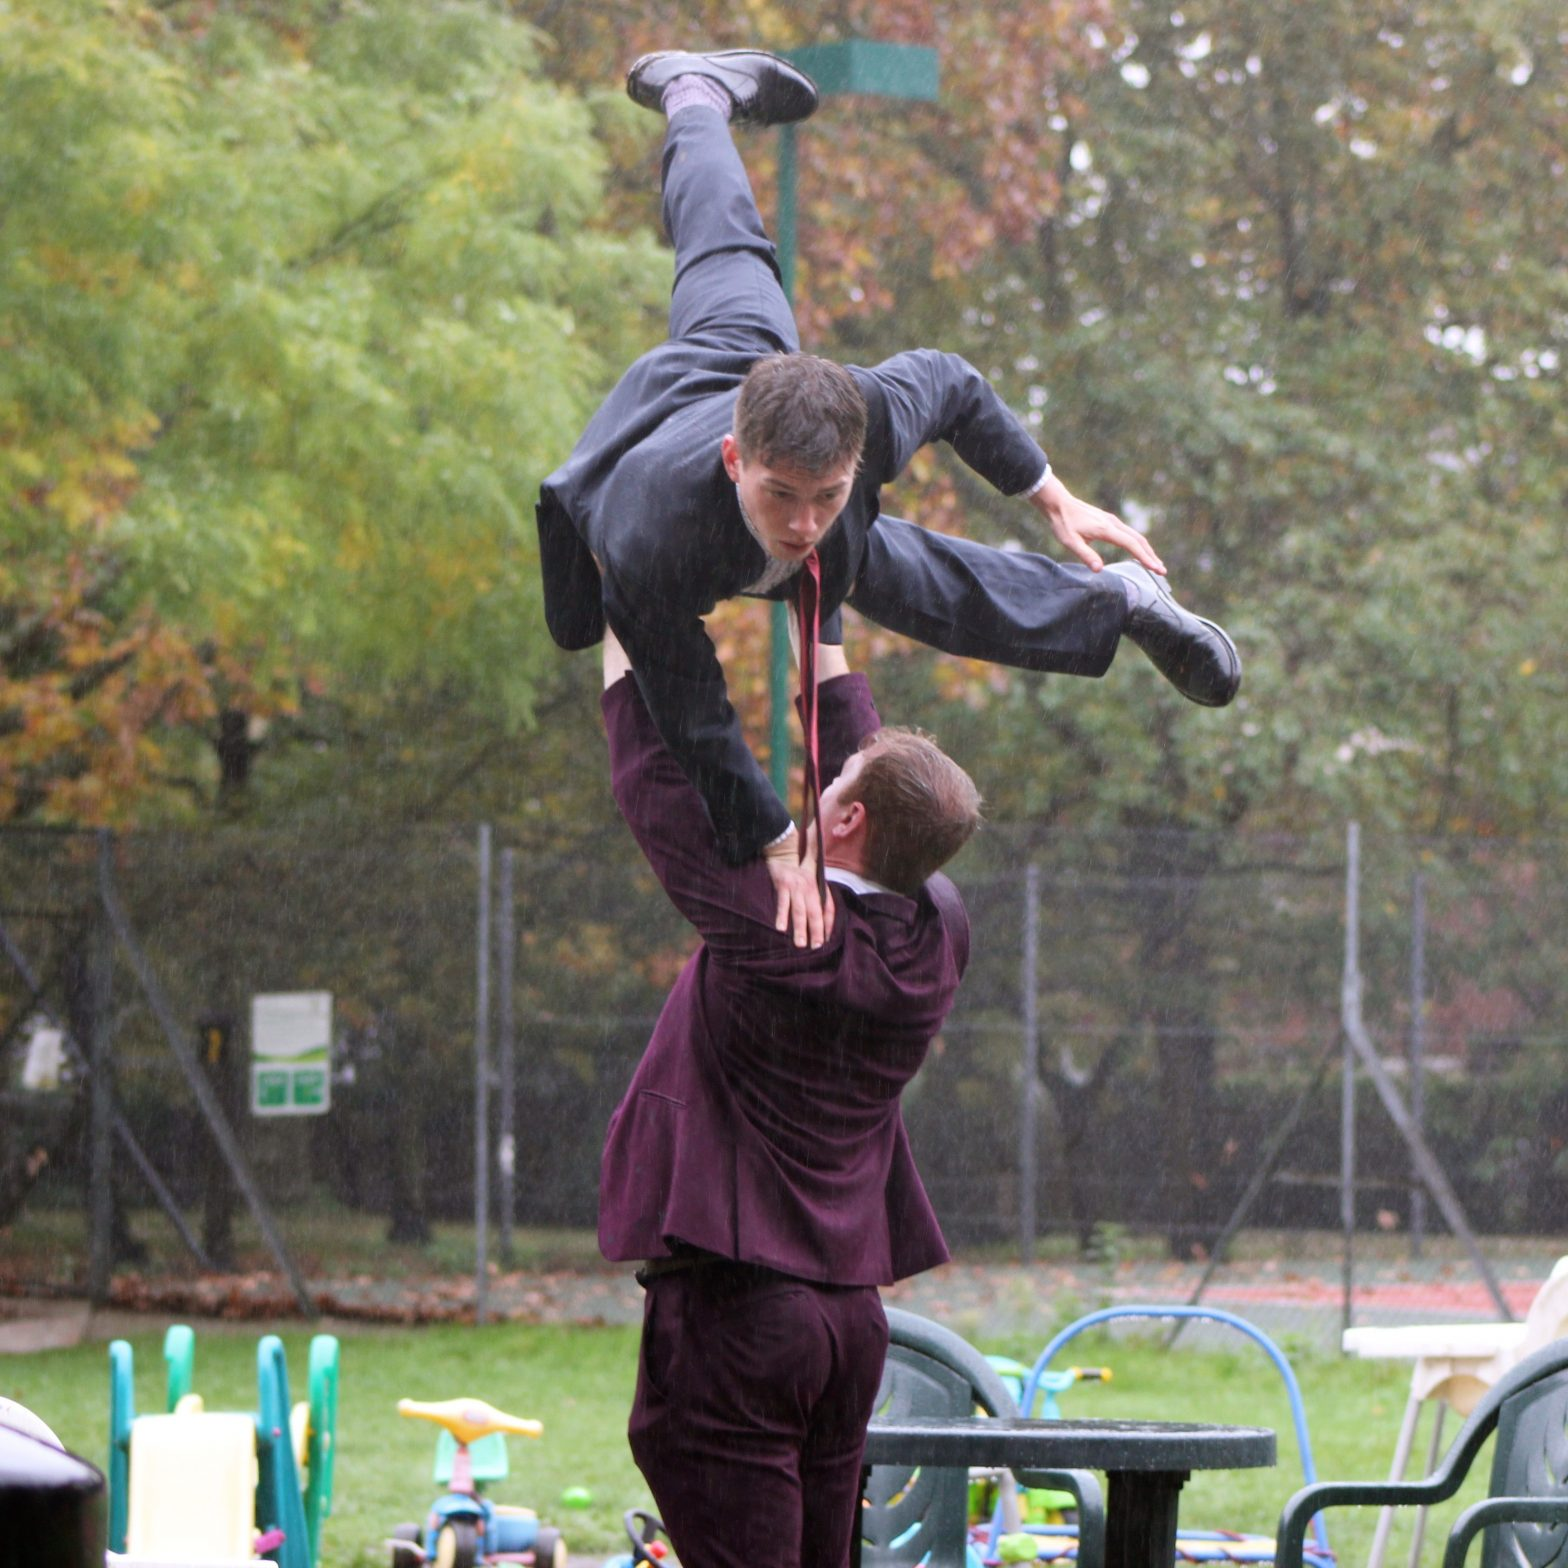 Two male dancers in suits are performing in a park. One Is being lifted by the other.